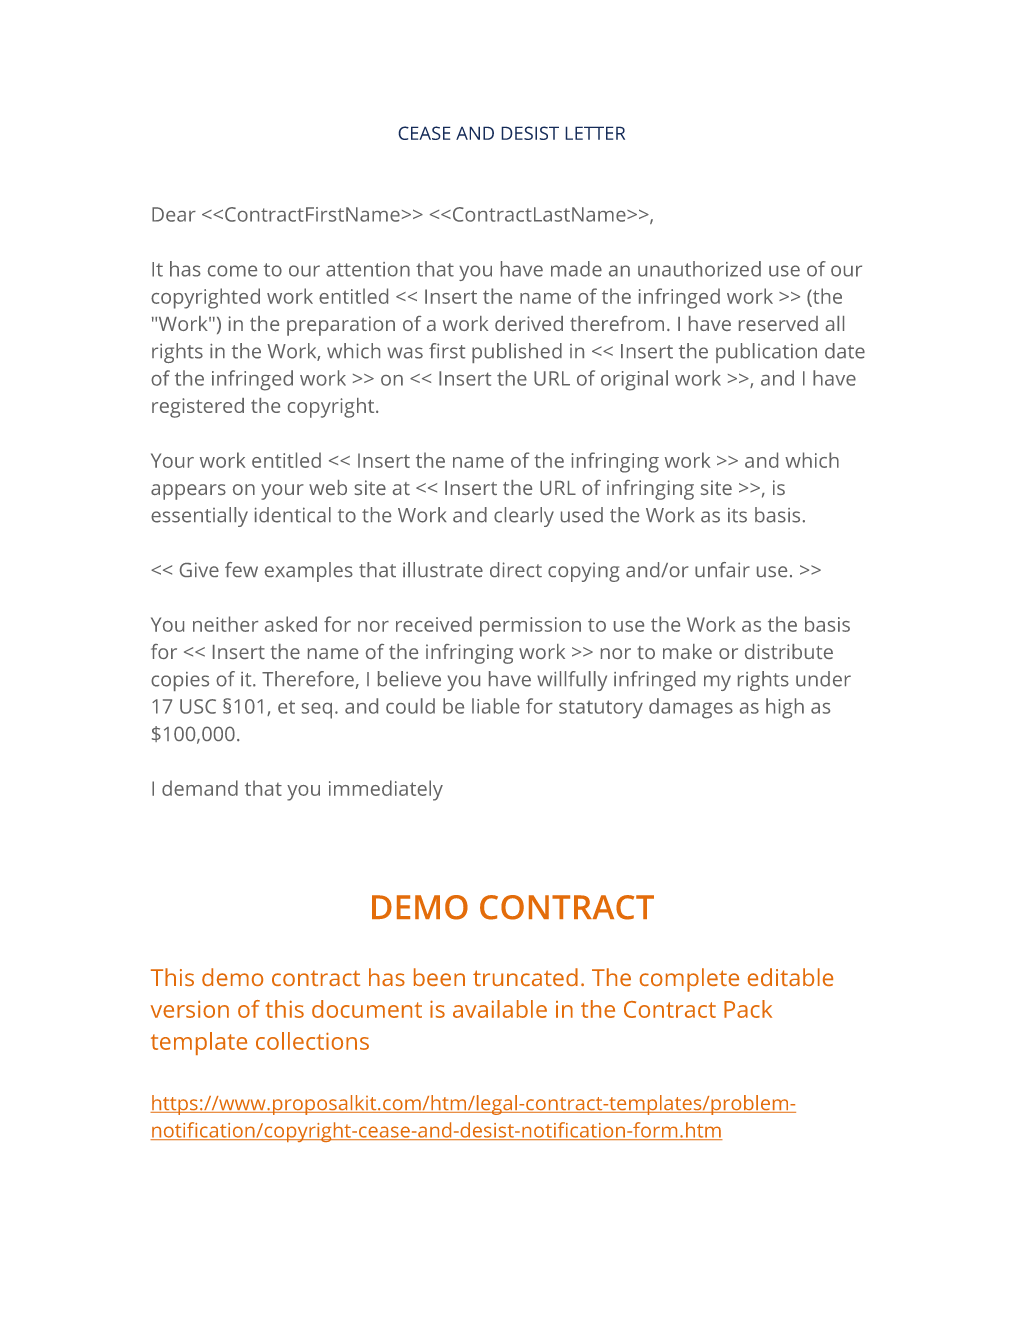 Copyright Cease And Desist Notification Form  Cease And Desist Template